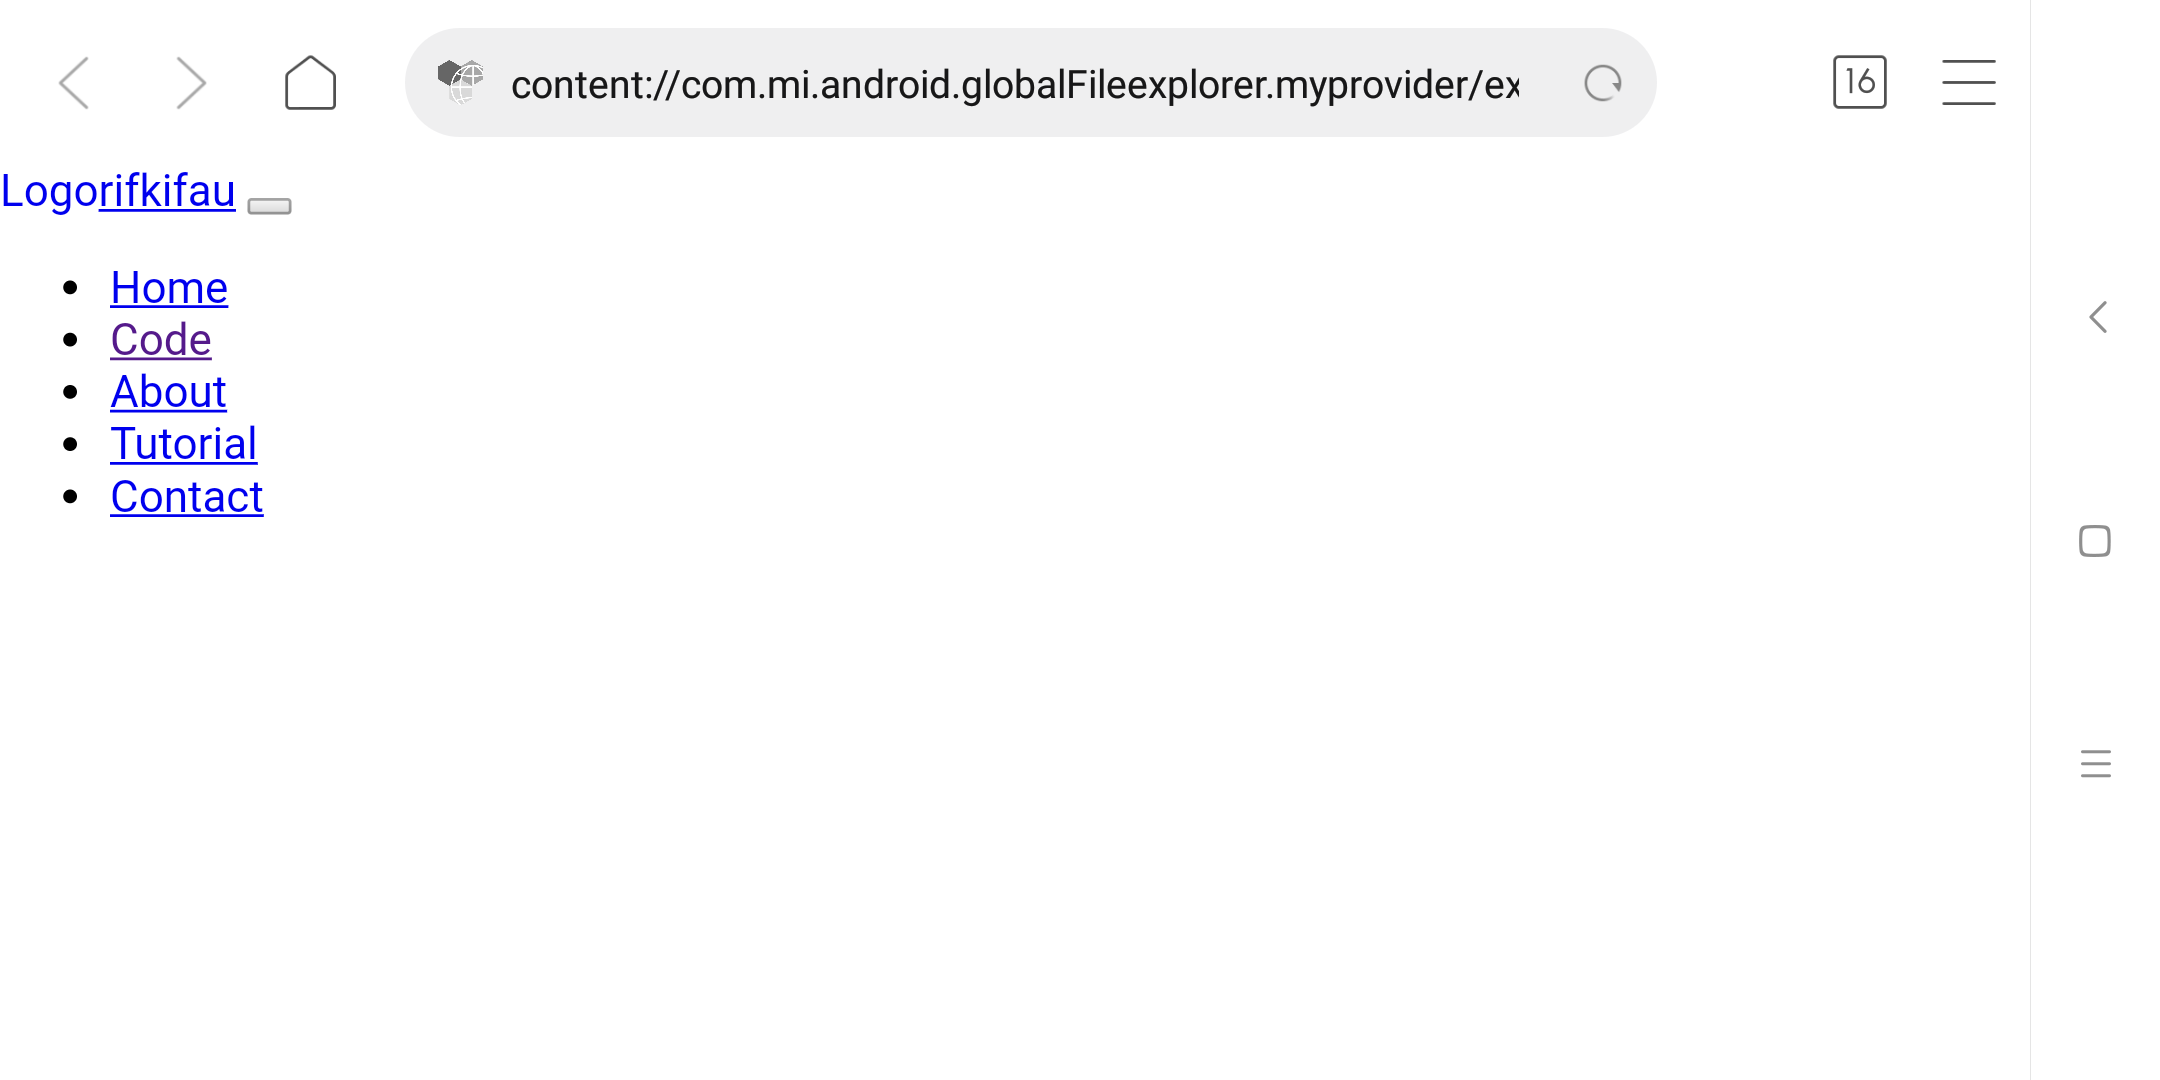 Cara Membuka Local Offline Index html webgis webmap di Browser Smartphone